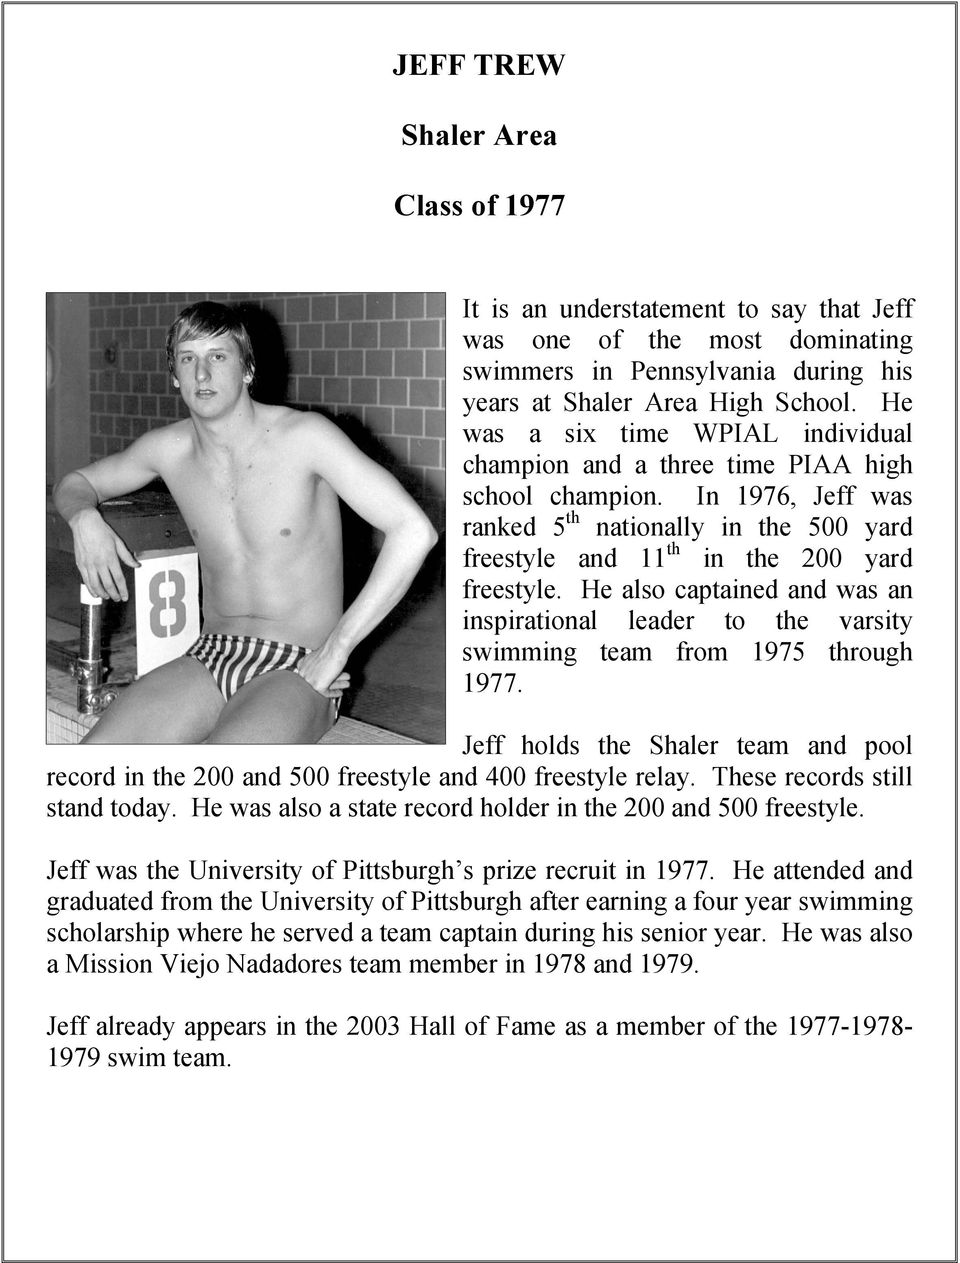 He also captained and was an inspirational leader to the varsity swimming team from 1975 through 1977. Jeff holds the Shaler team and pool record in the 200 and 500 freestyle and 400 freestyle relay.